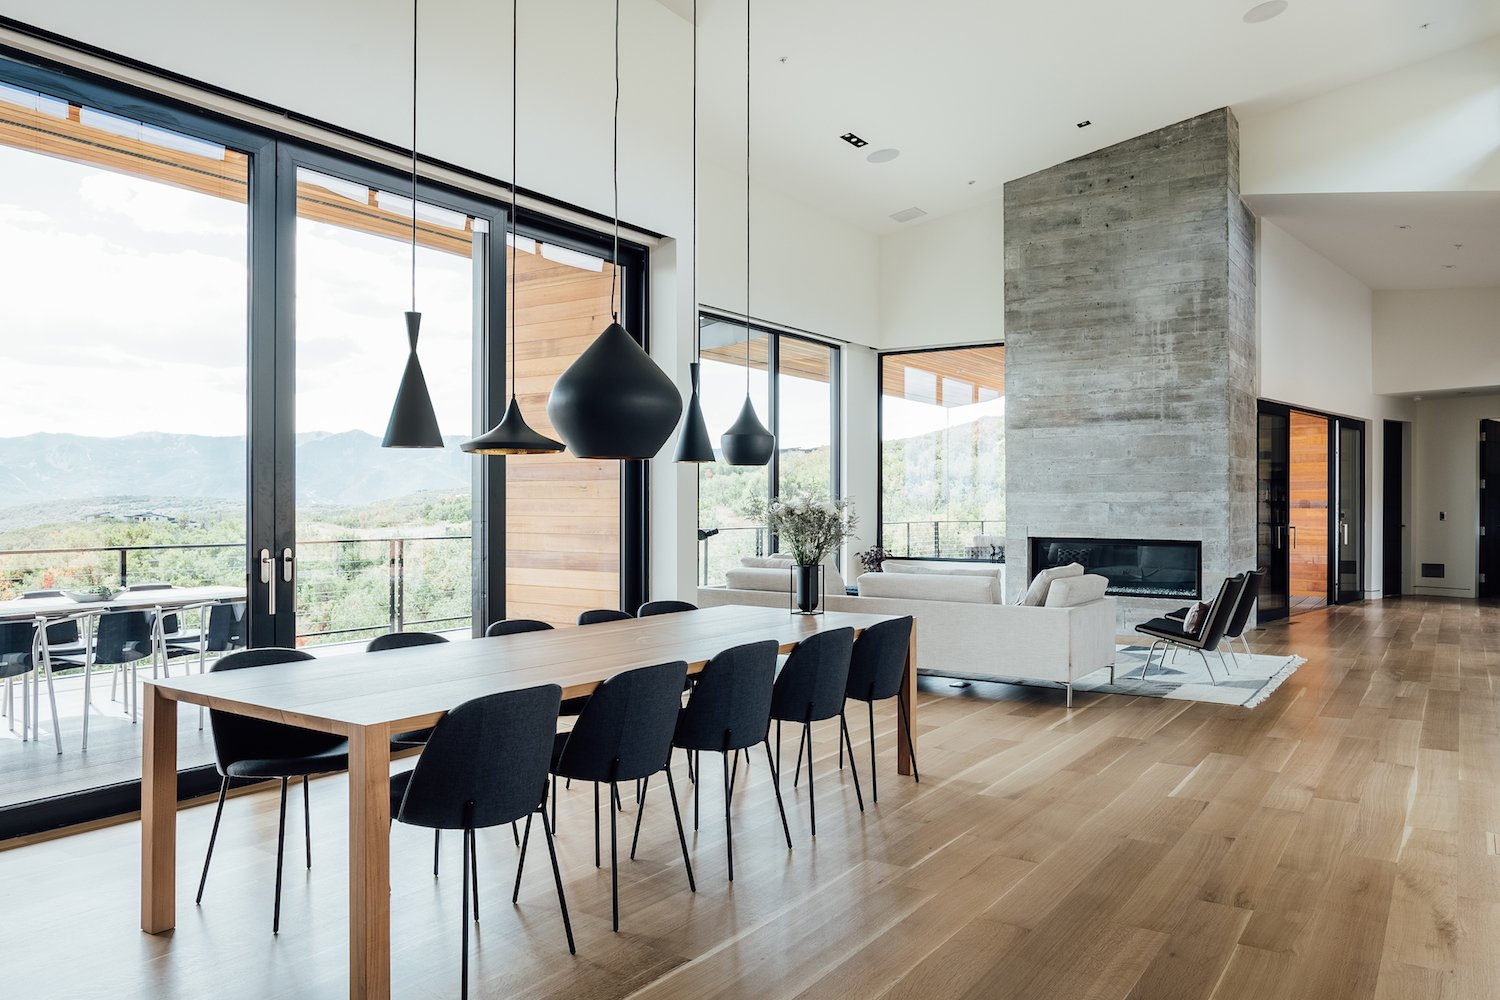 Photo 4 Of 14 In An Interior Designeru0027s Utah Abode Blends Mountain Living  With Scandinavian Style   Dwell